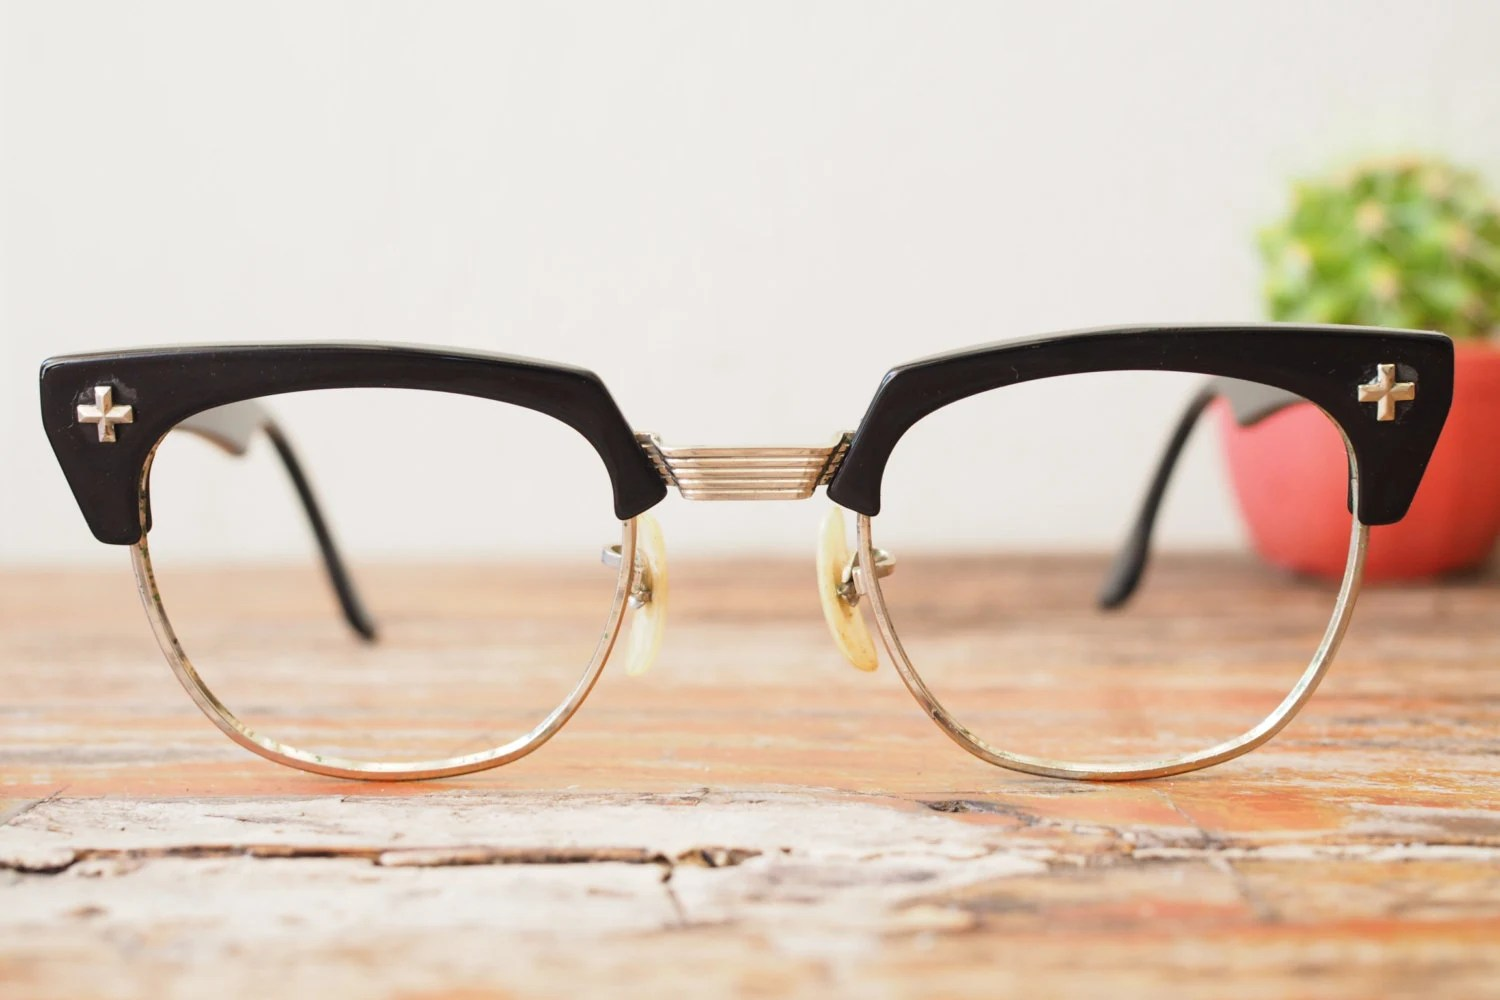 Vintage Bausch And Lomb Eyeglasses Club Master 1950 s Made ...